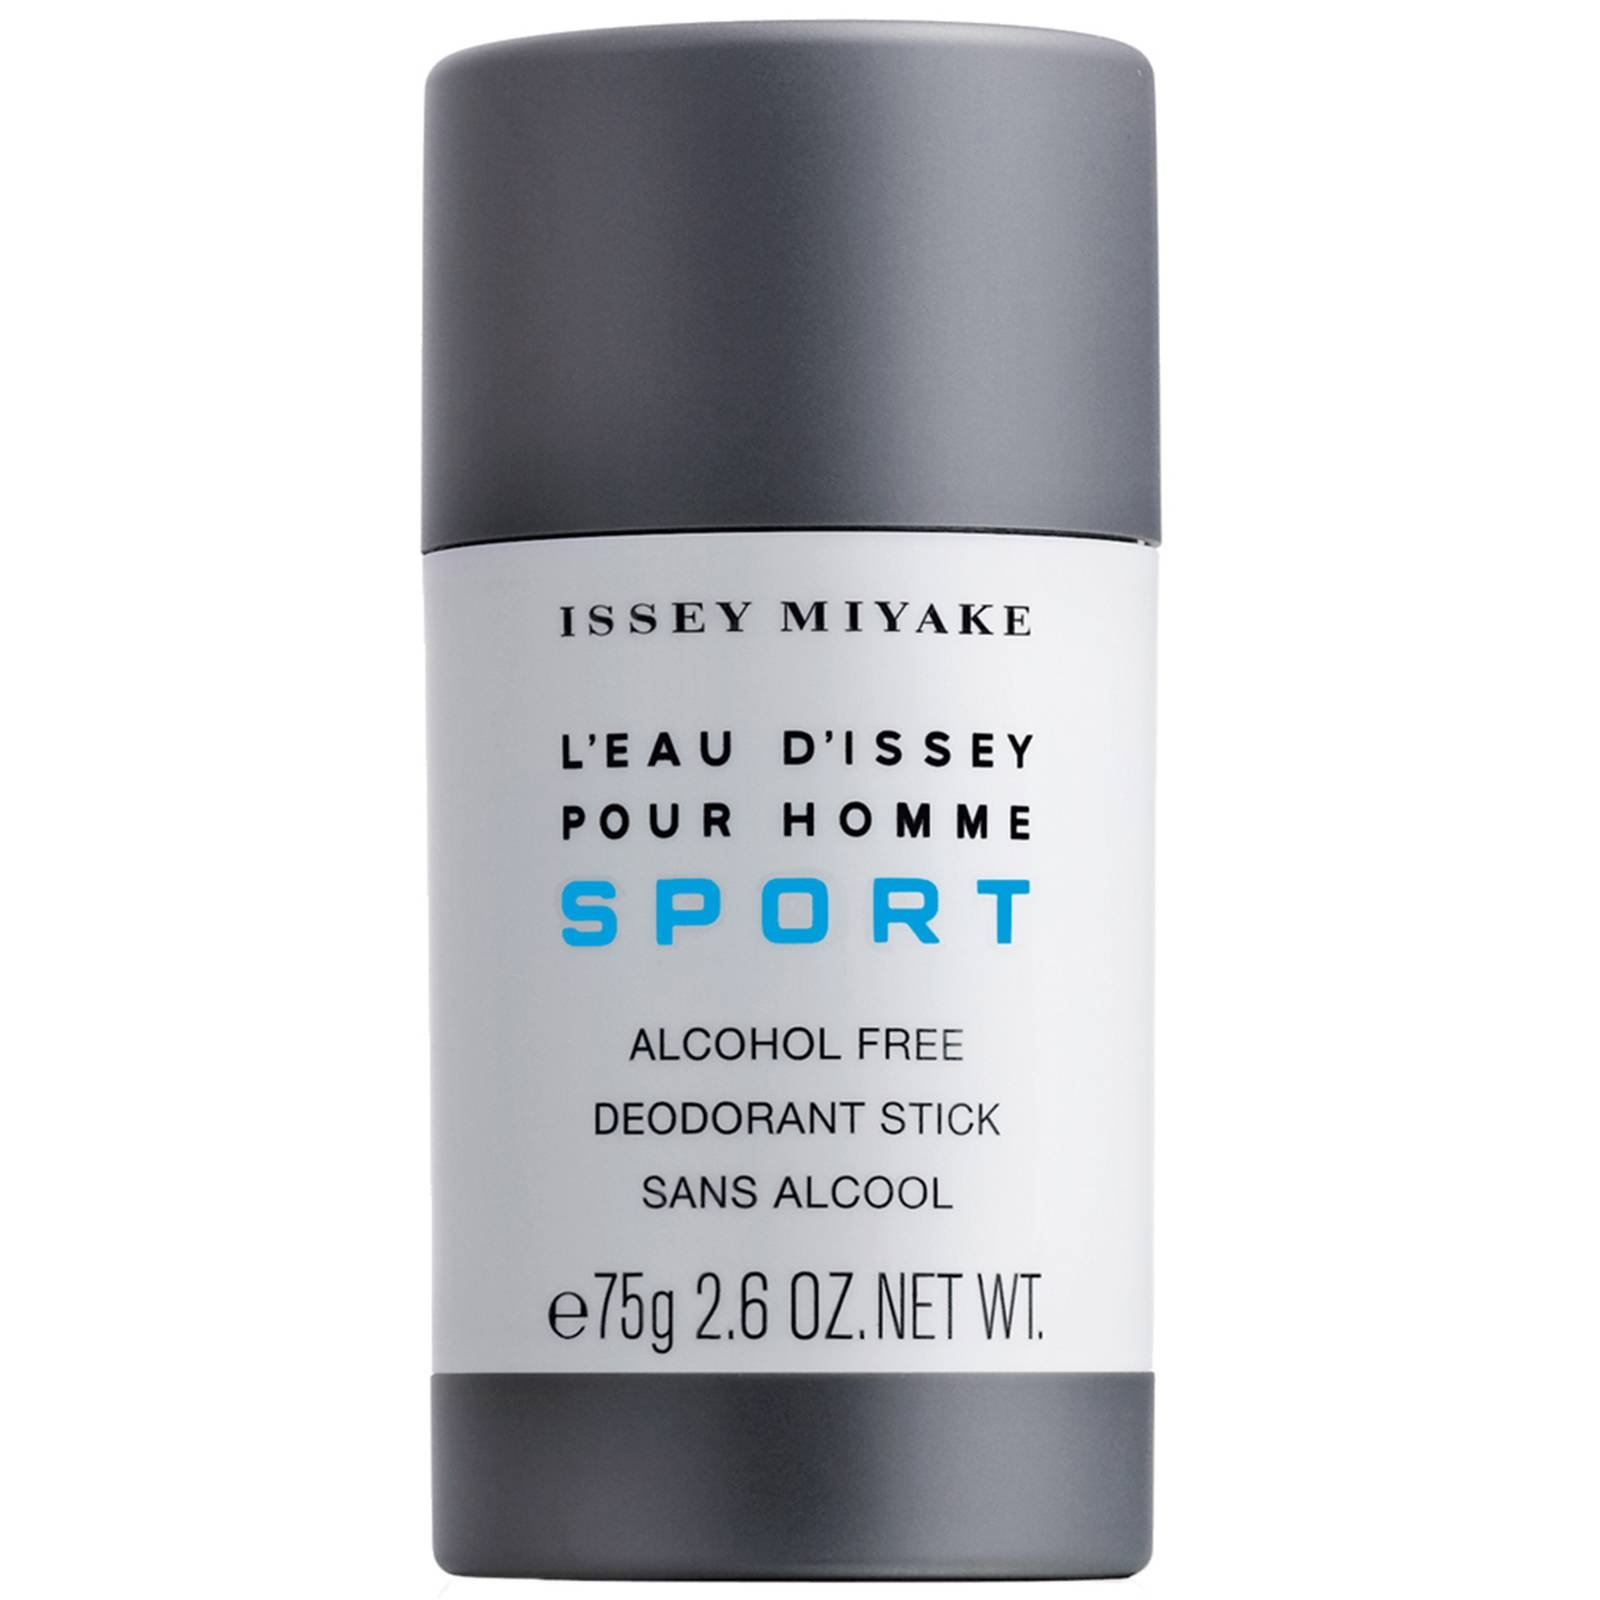 issey miyake l'eau d'issey pour homme sport deodorante stick (senza alcool) 75g